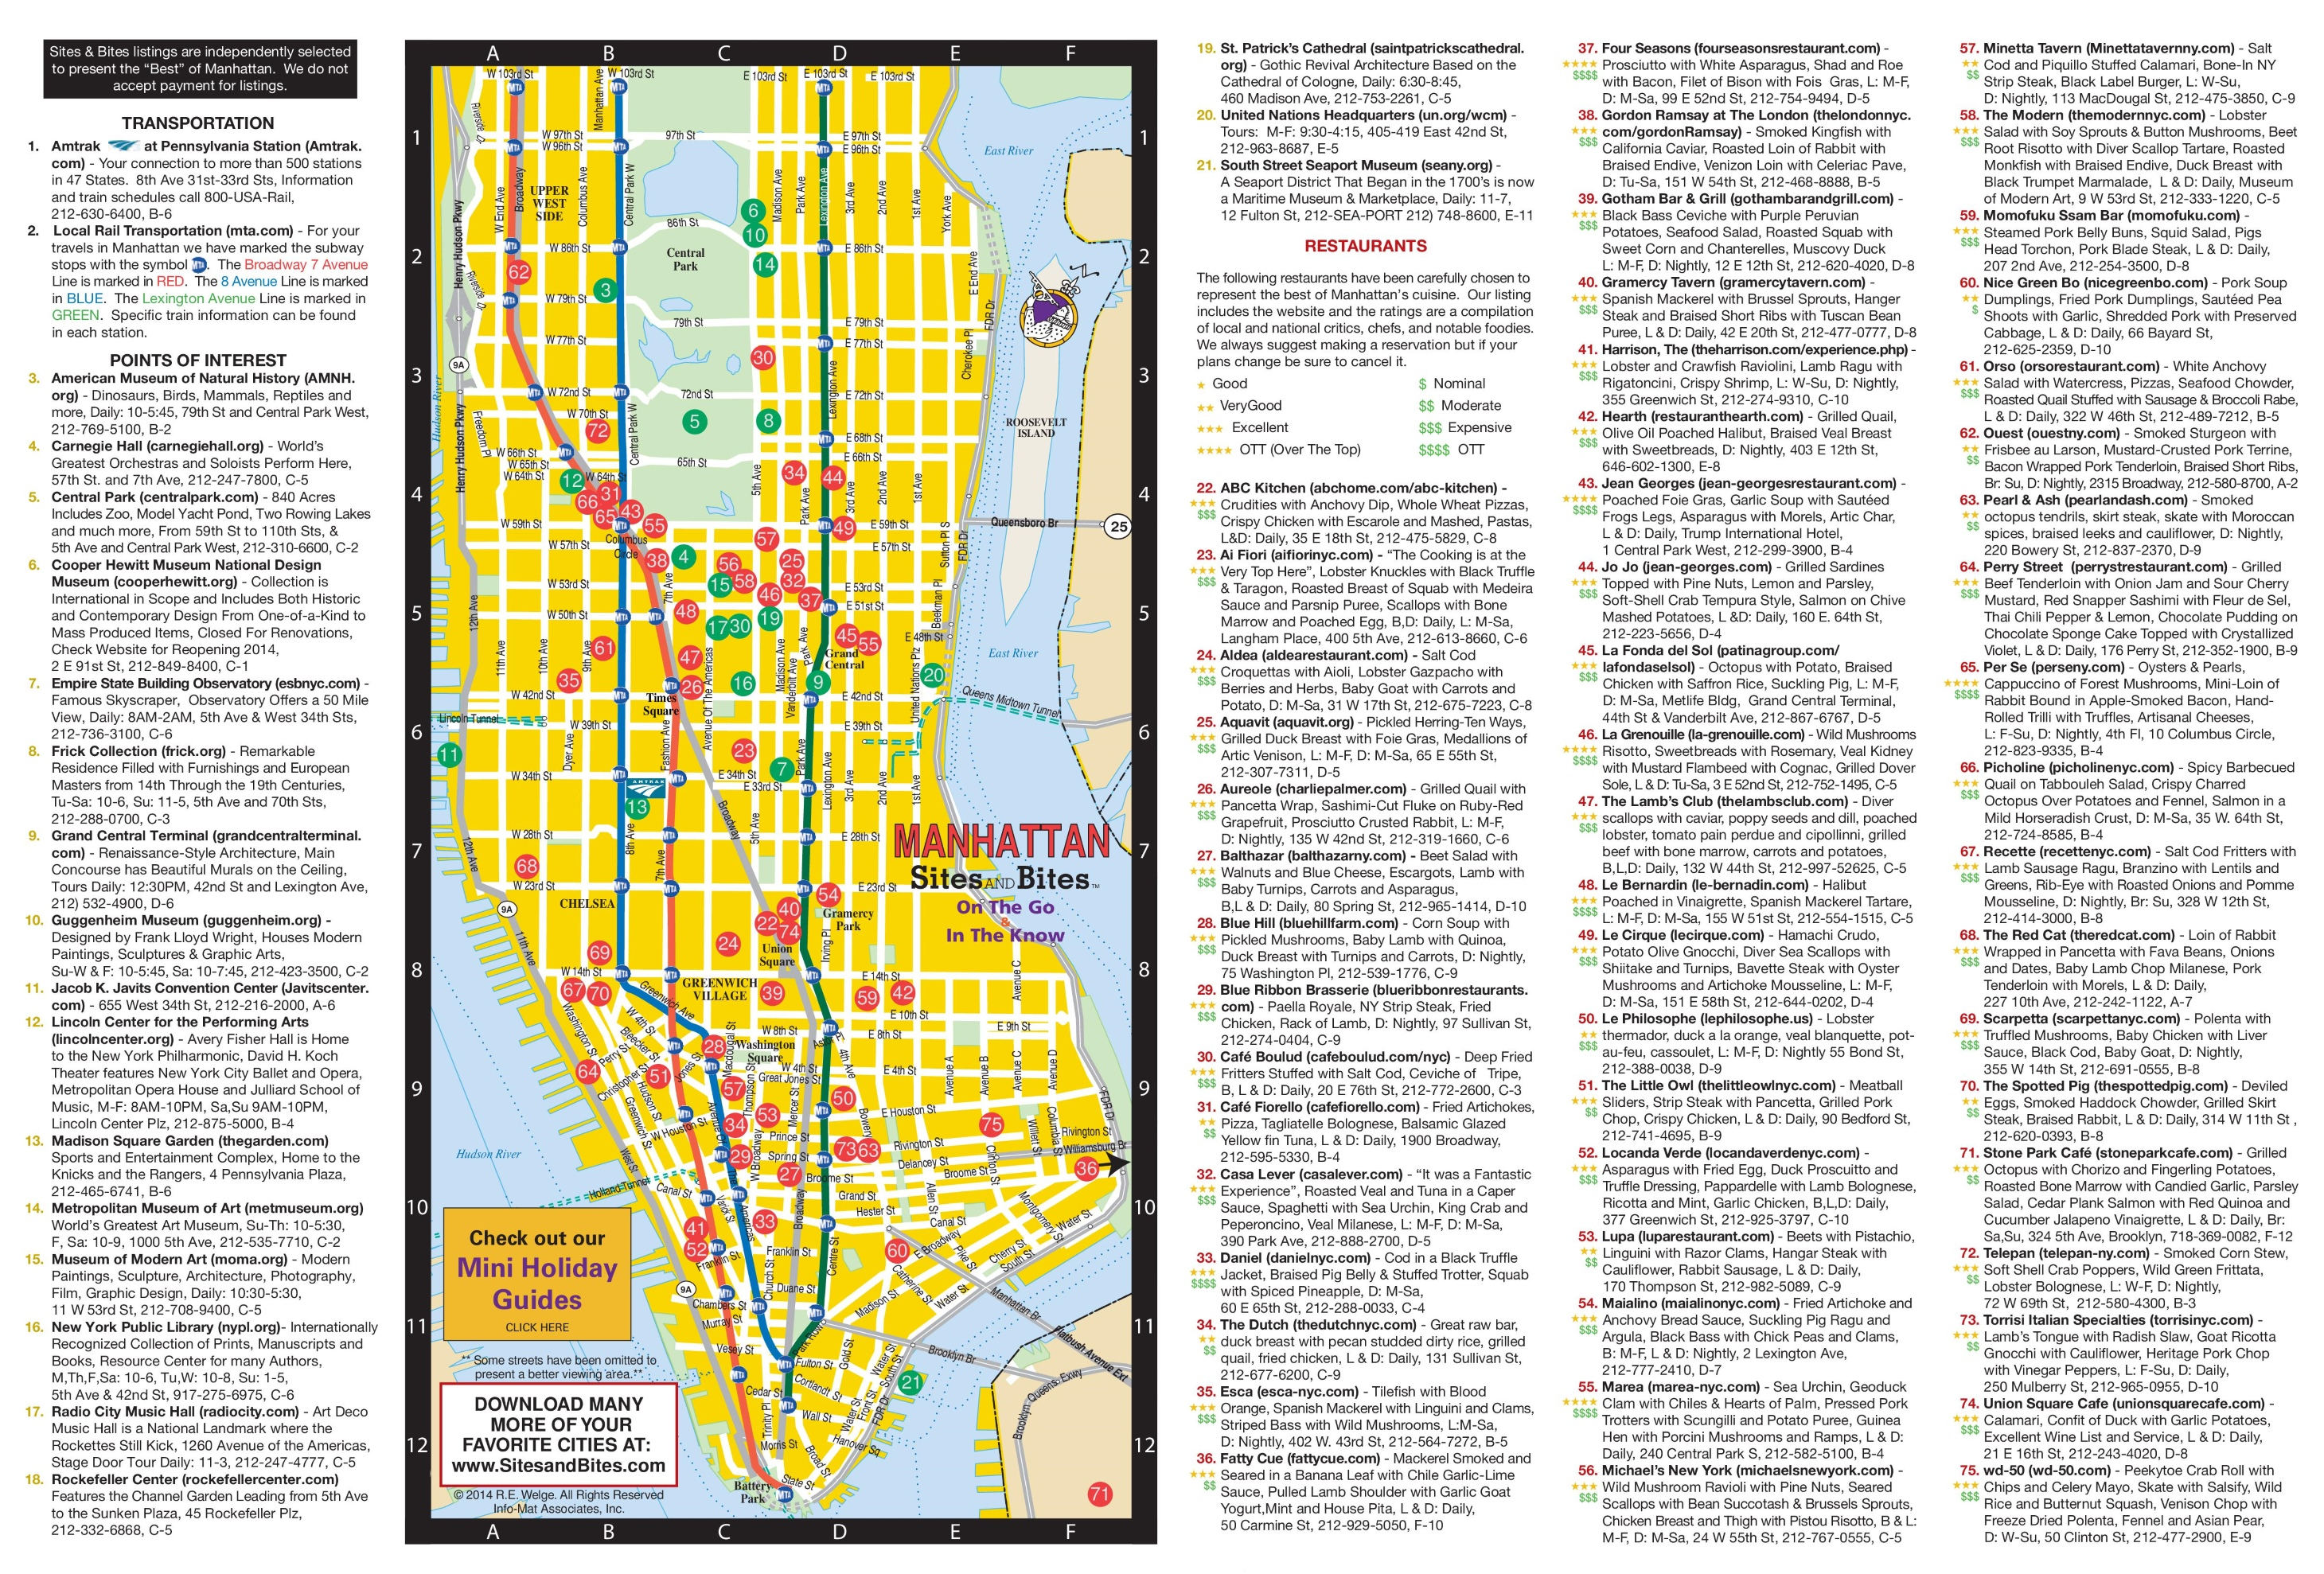 Manhattan tourist attractions map